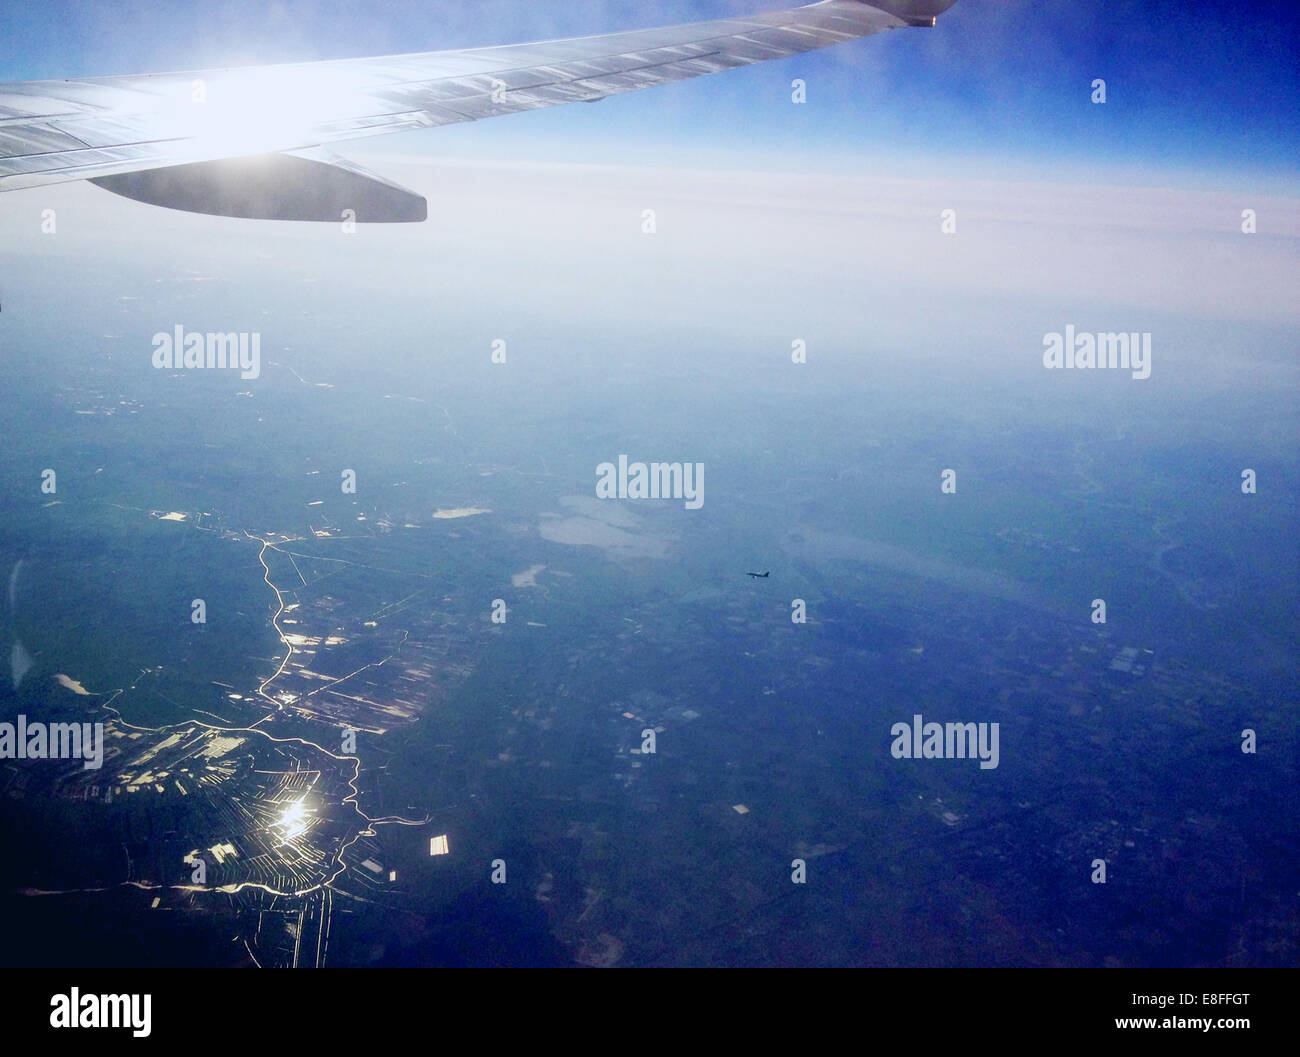 View of airplane wing from vehicle interior/airplane window Stock Photo